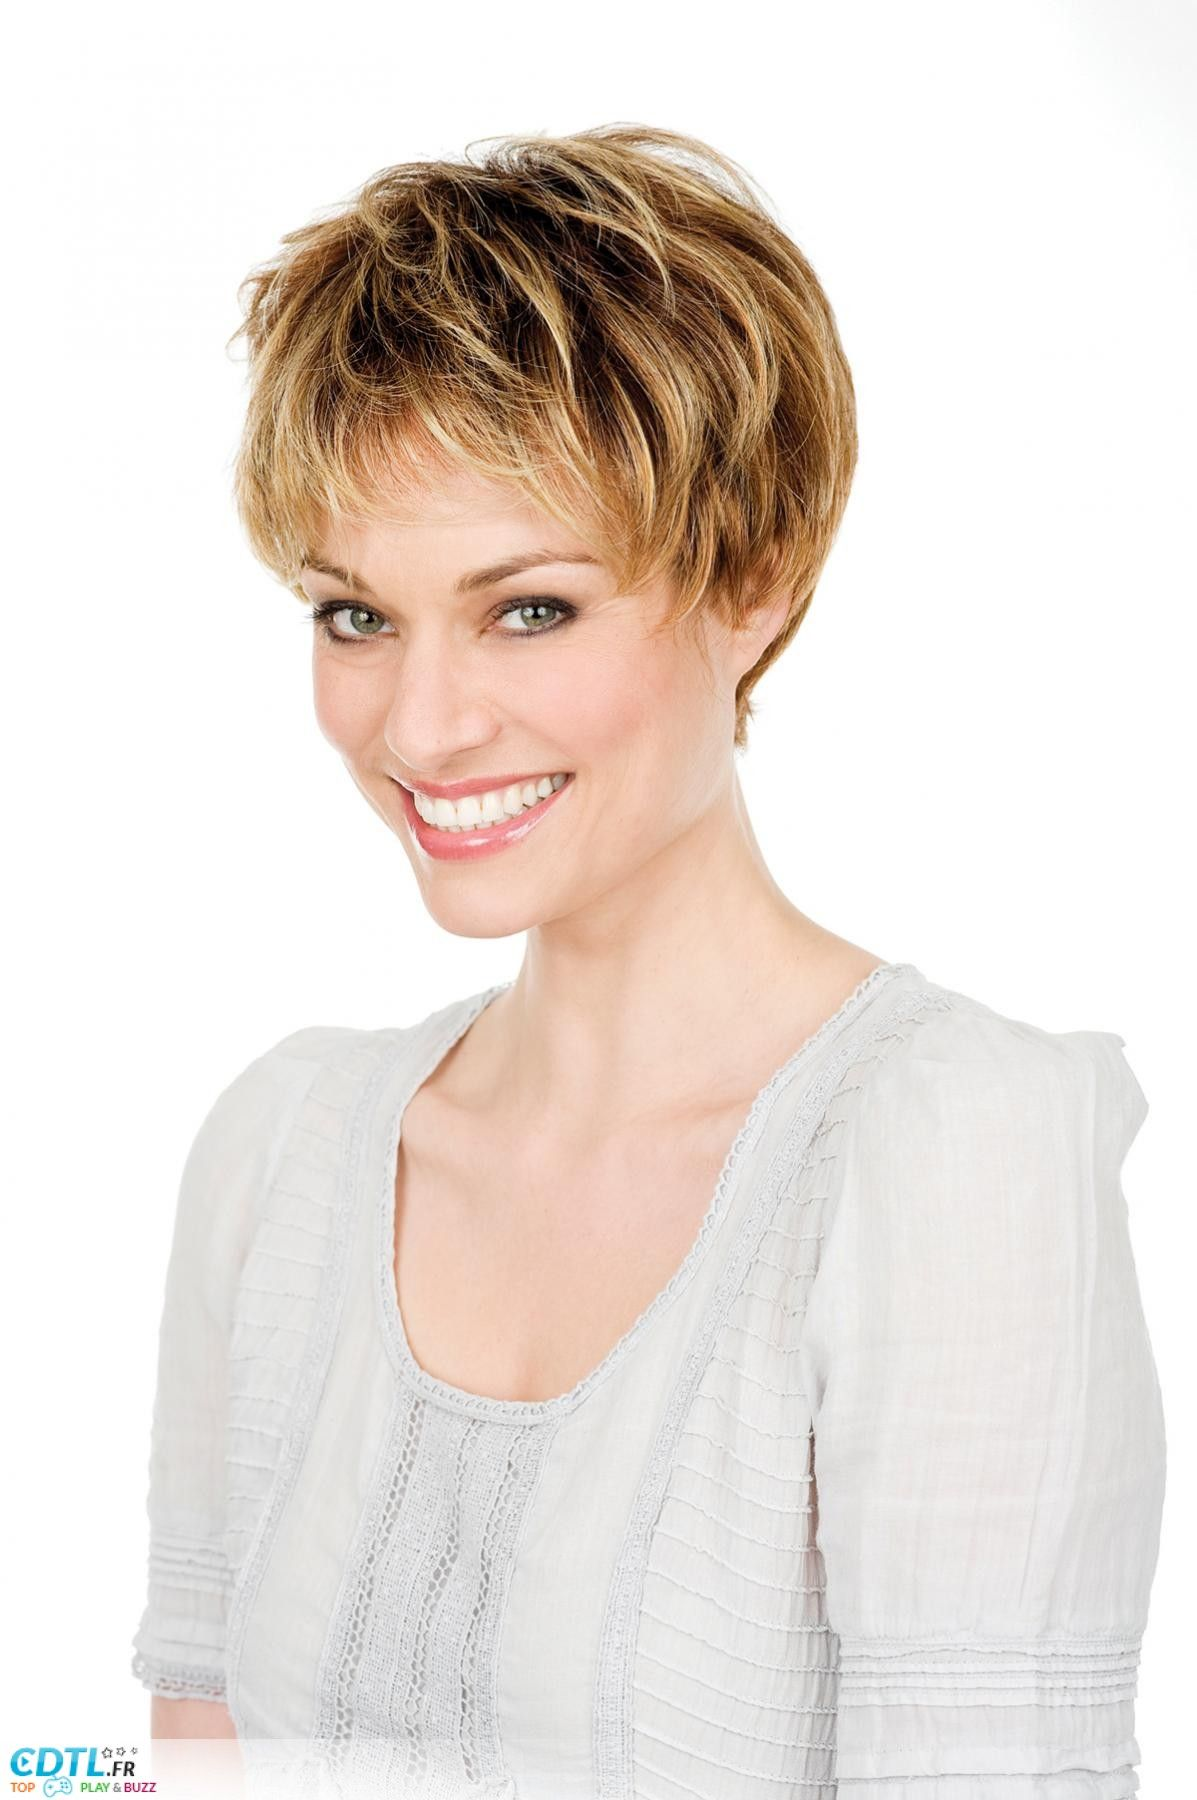 Coupe courte femme mamie | Cheveux | Pinterest | Coupe, Hair cuts and Html